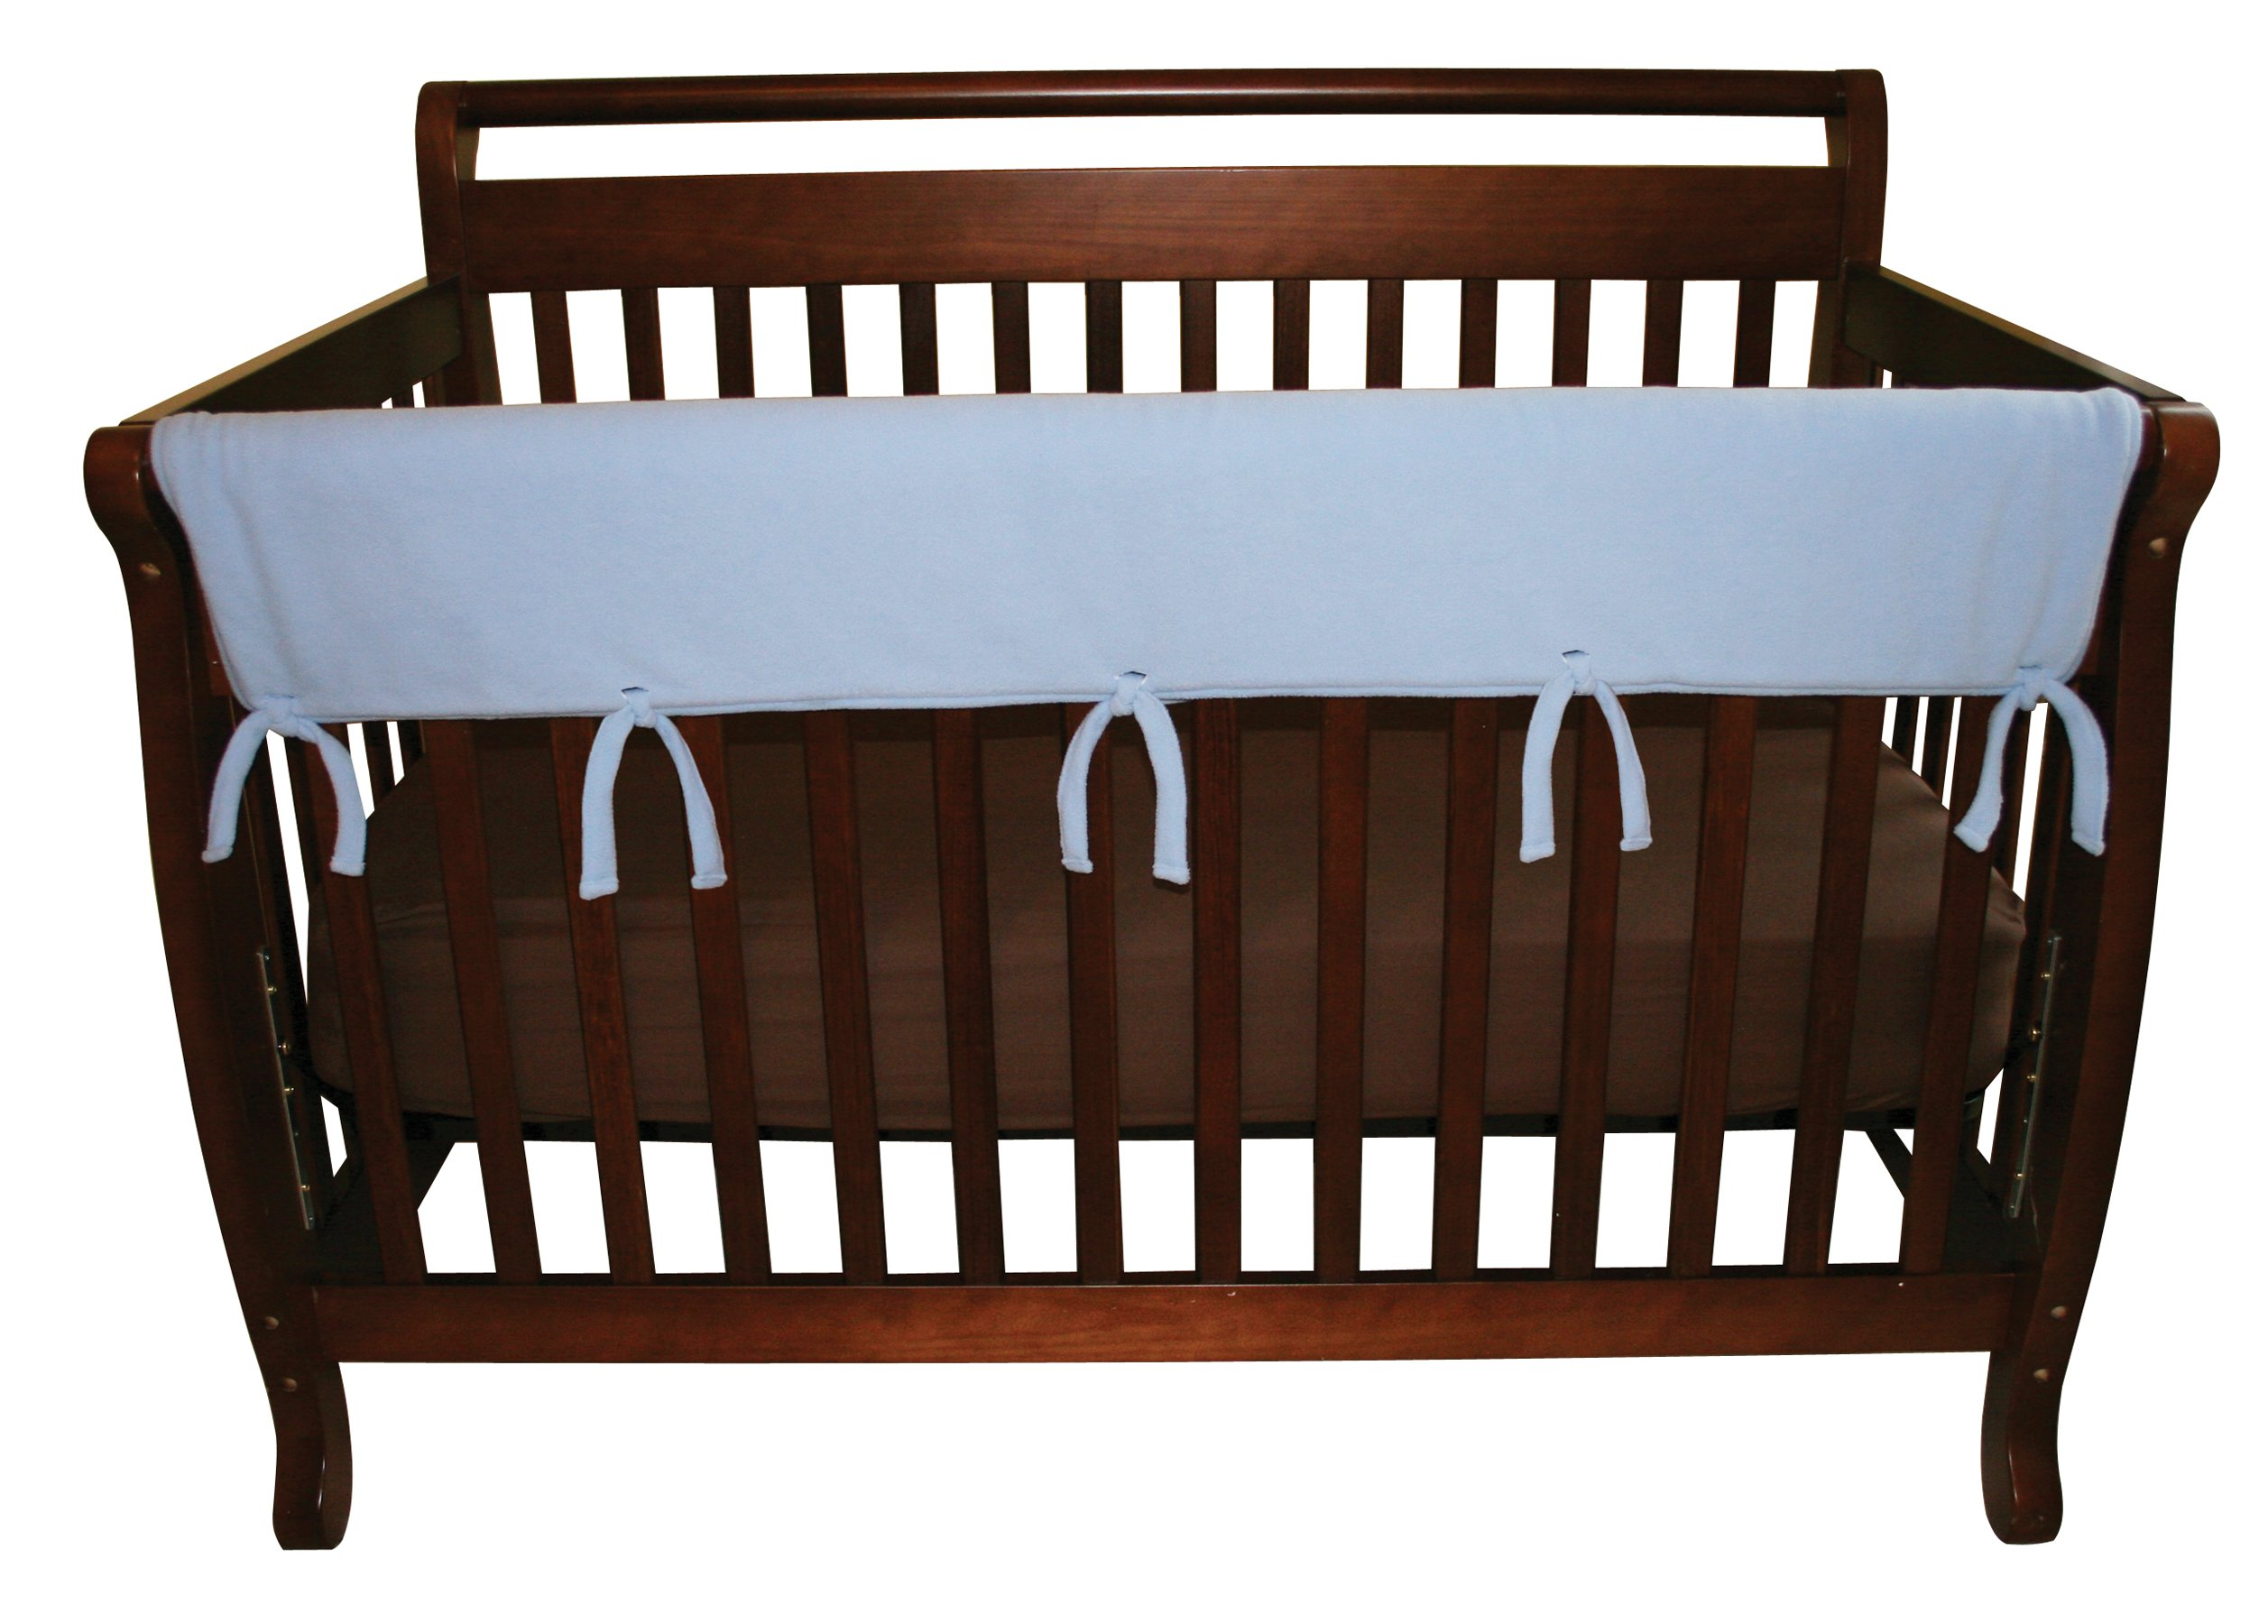 Trend Lab Waterproof CribWrap Rail Cover For Narrow Long Crib Rails Made to Fit Rails up to 8 Around